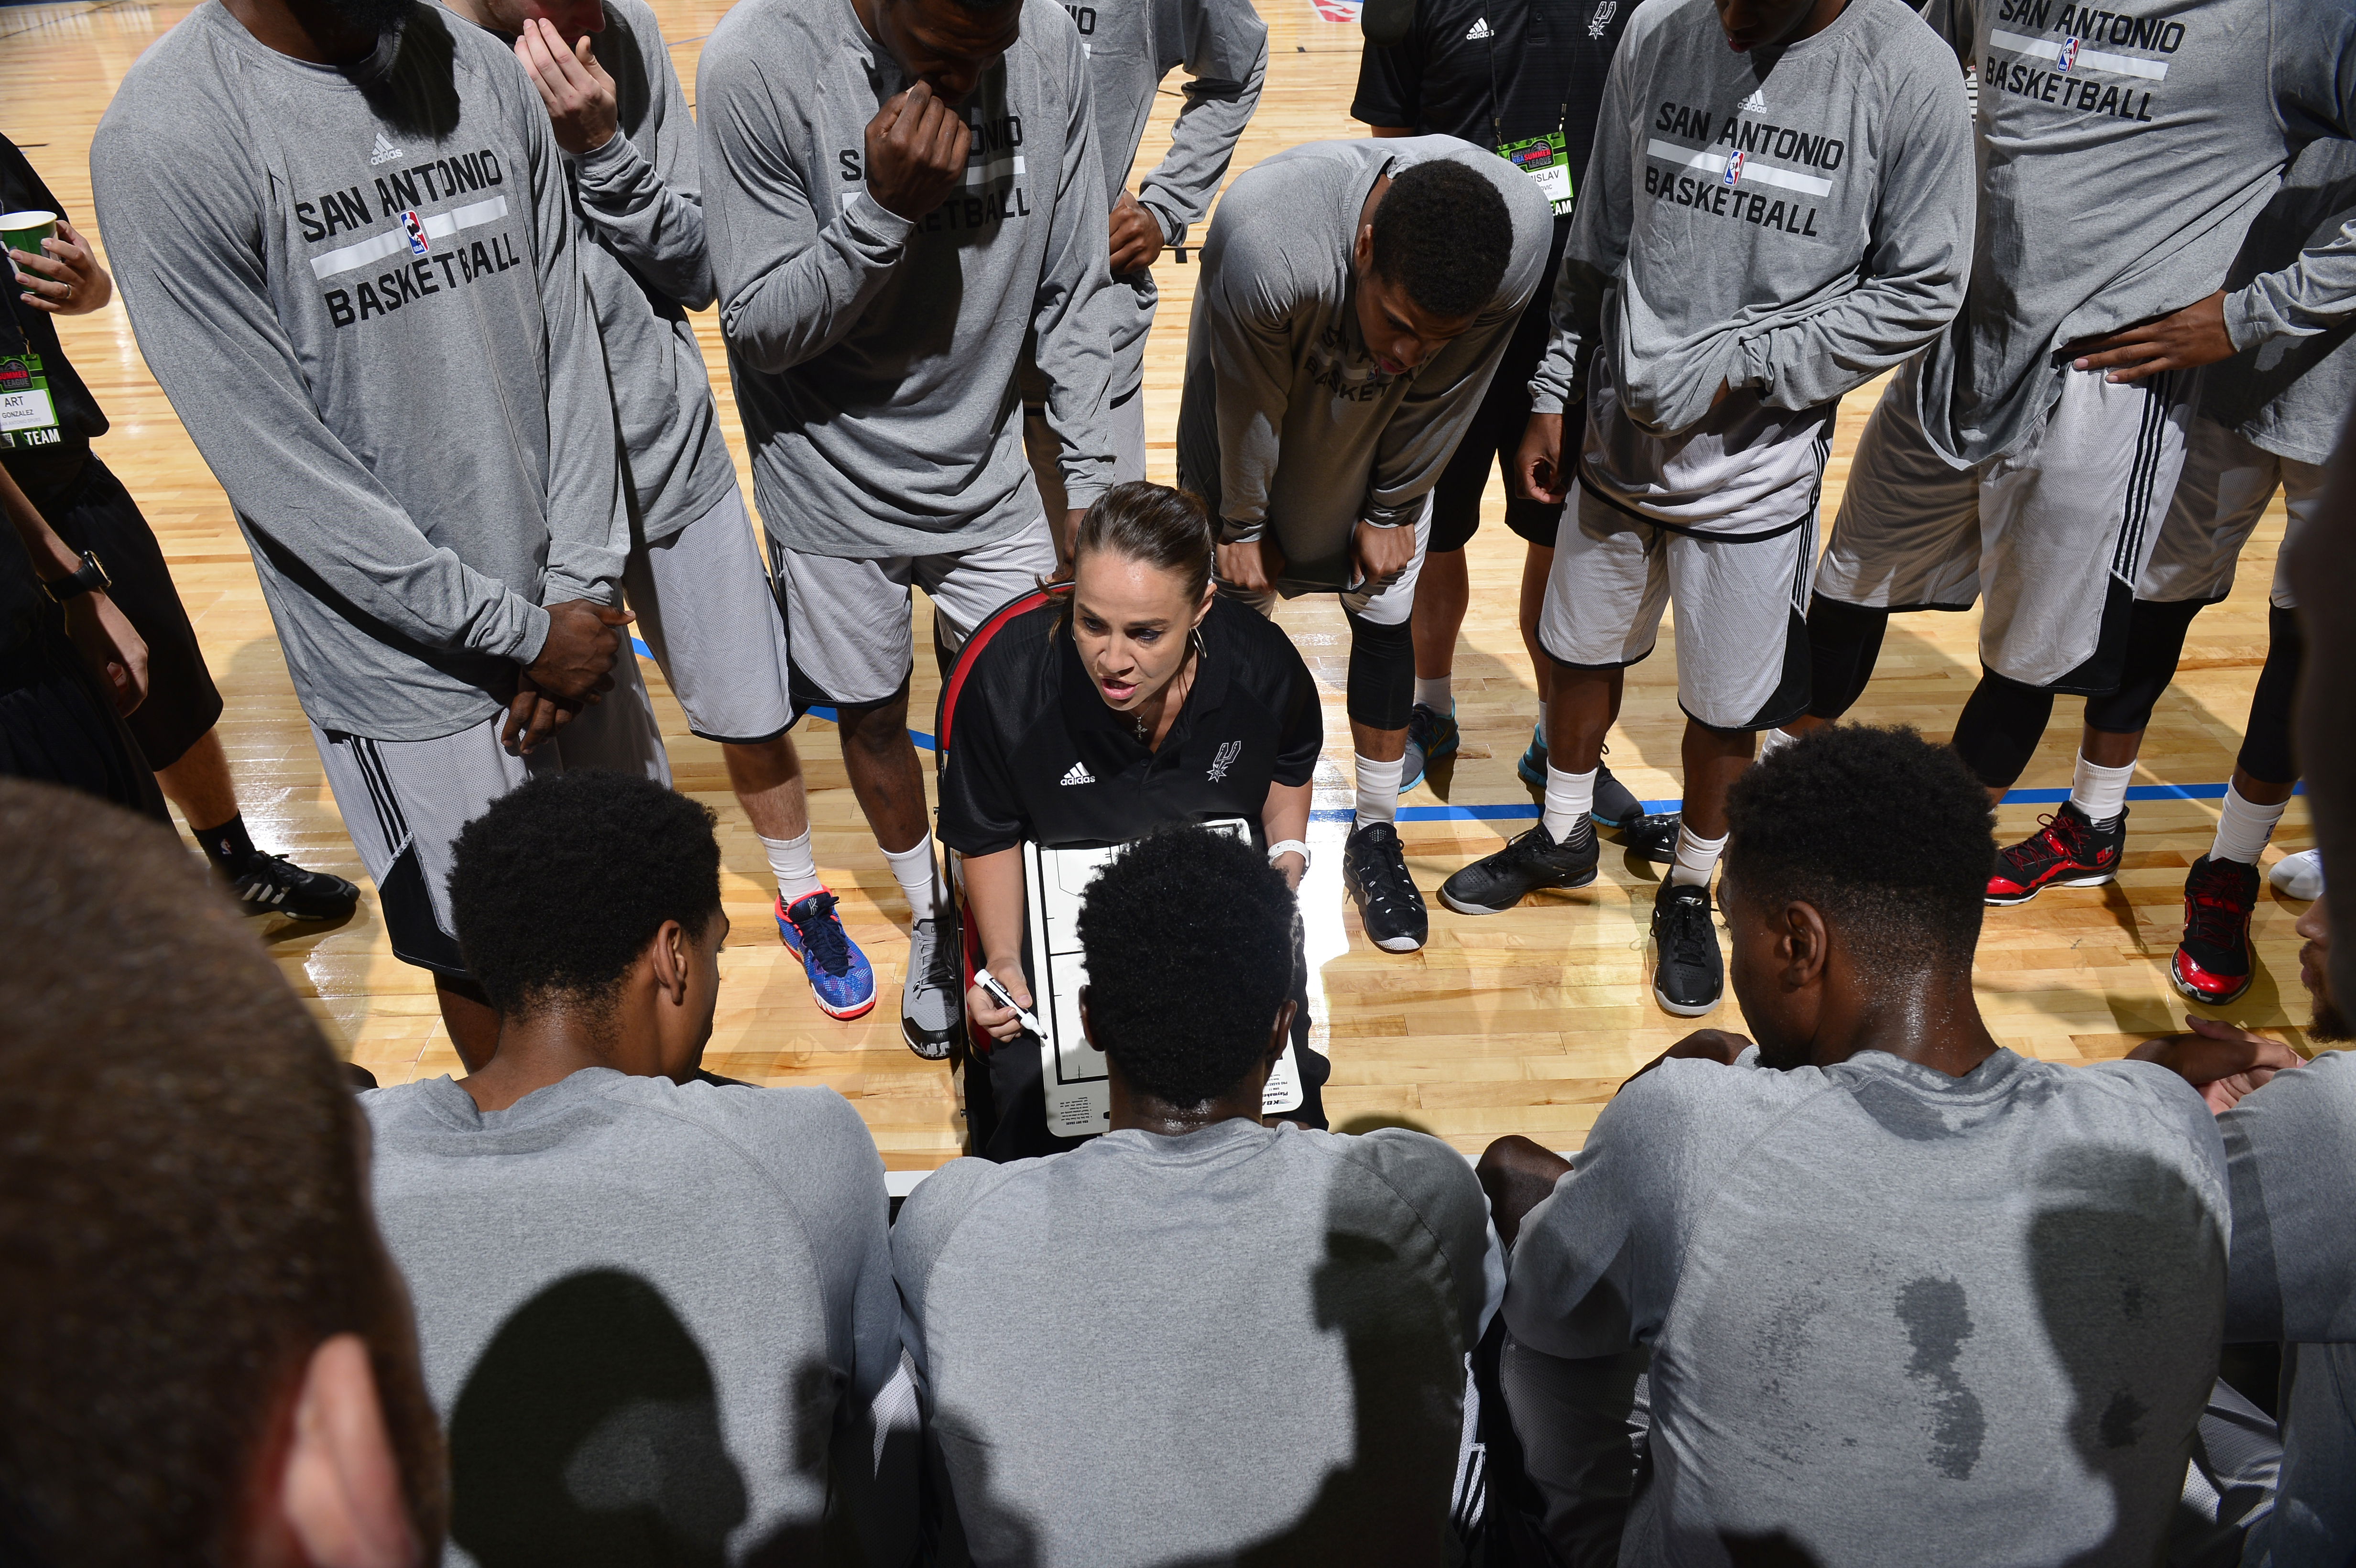 Coach Becky Hammon directs a play against the New York Knicks on July 11, 2015 at the Thomas & Mack Center in Las Vegas